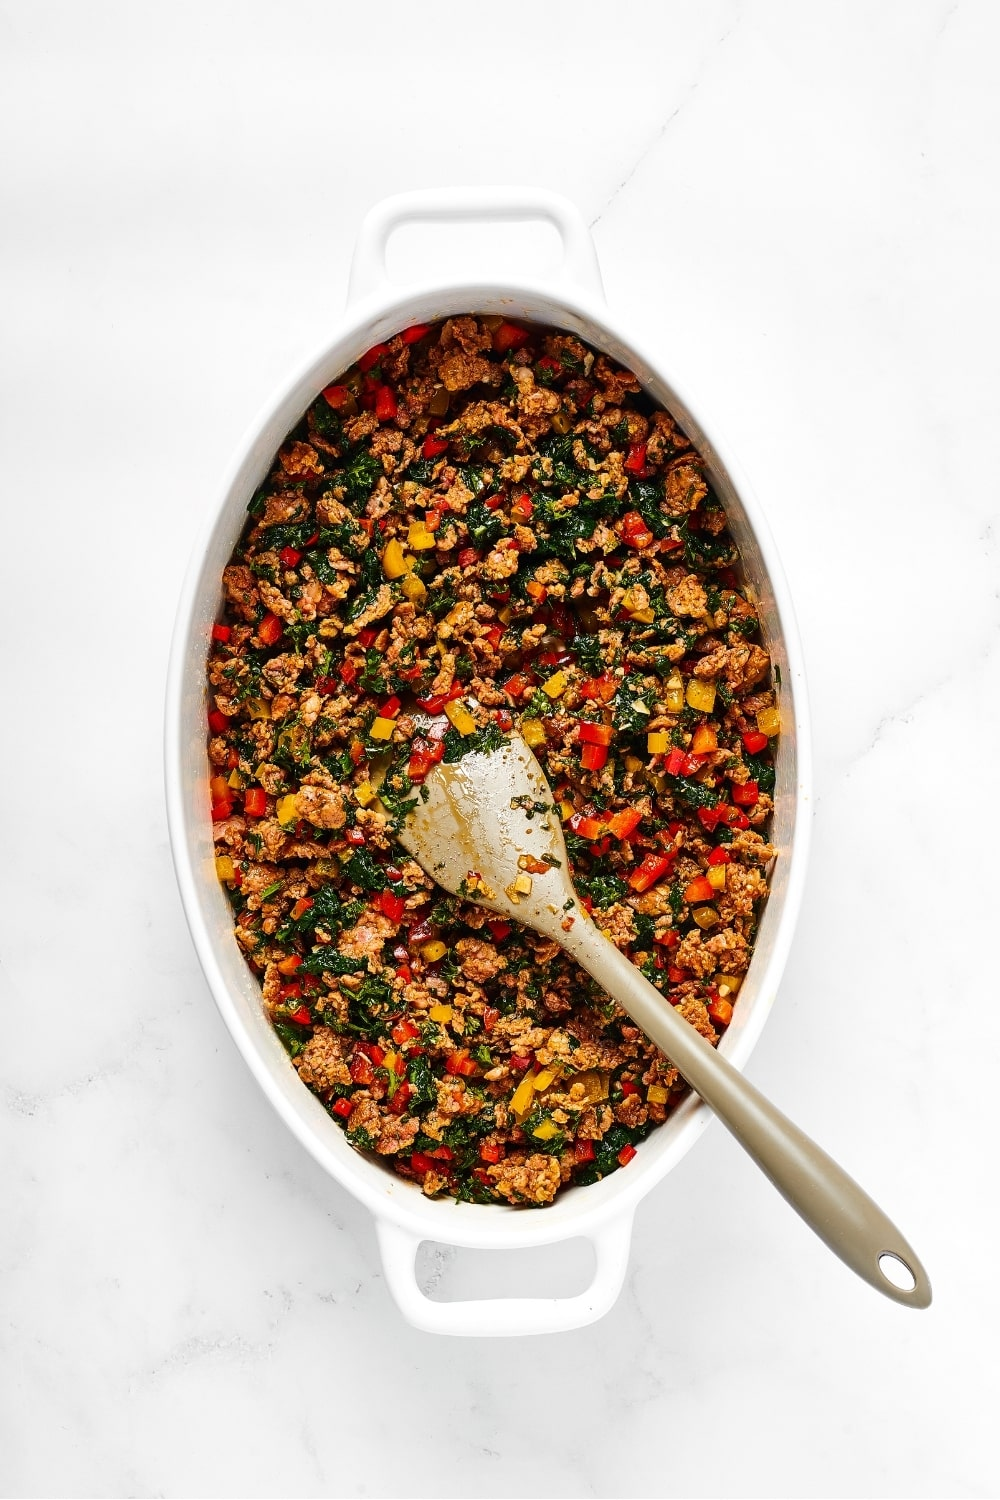 A white casserole dish filled with sausage crumbles, spinach, and yellow and red peppers. There is a spoon in the middle of it and the casserole dish is on a white counter.